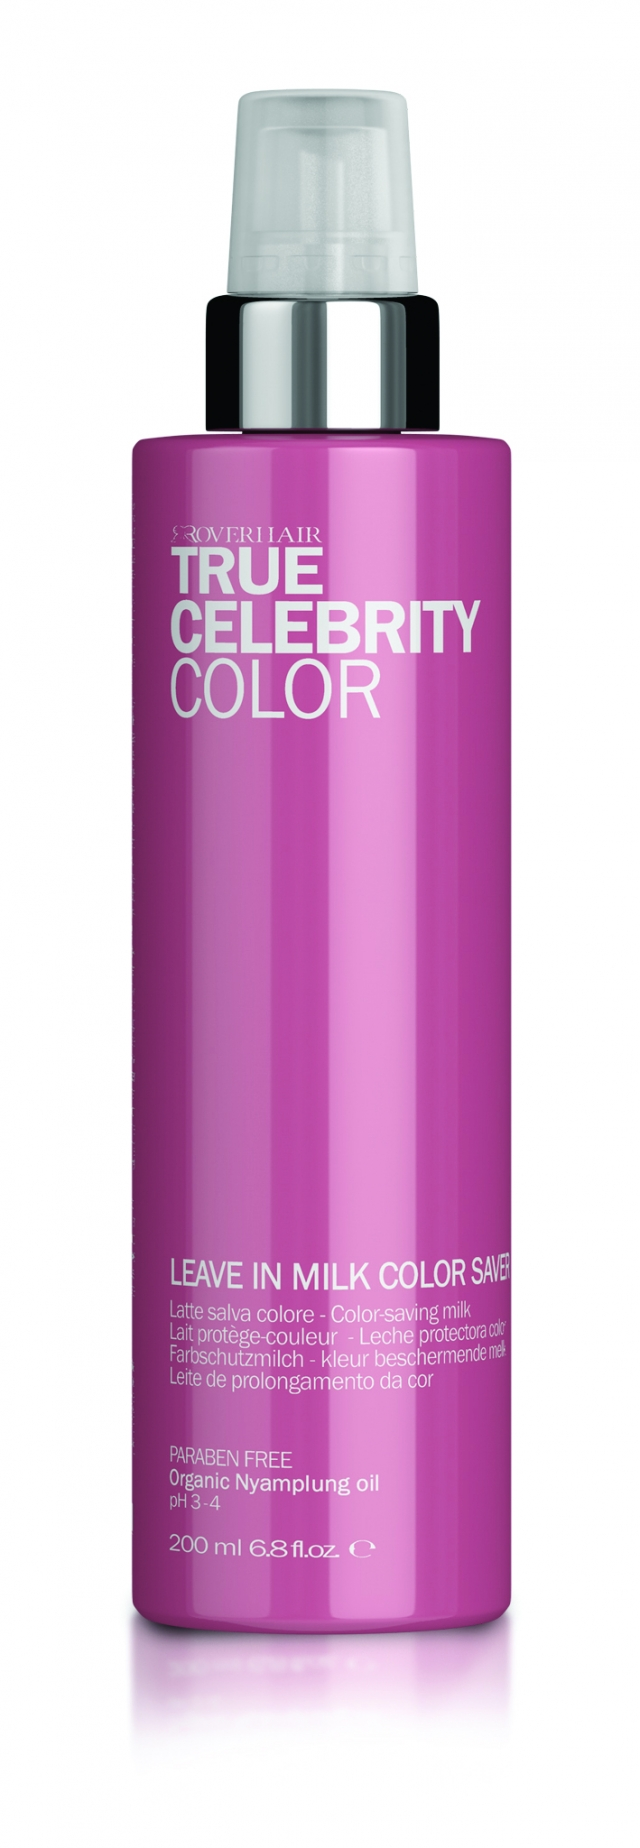 True Celebrity Color Saver Leave in milk Image